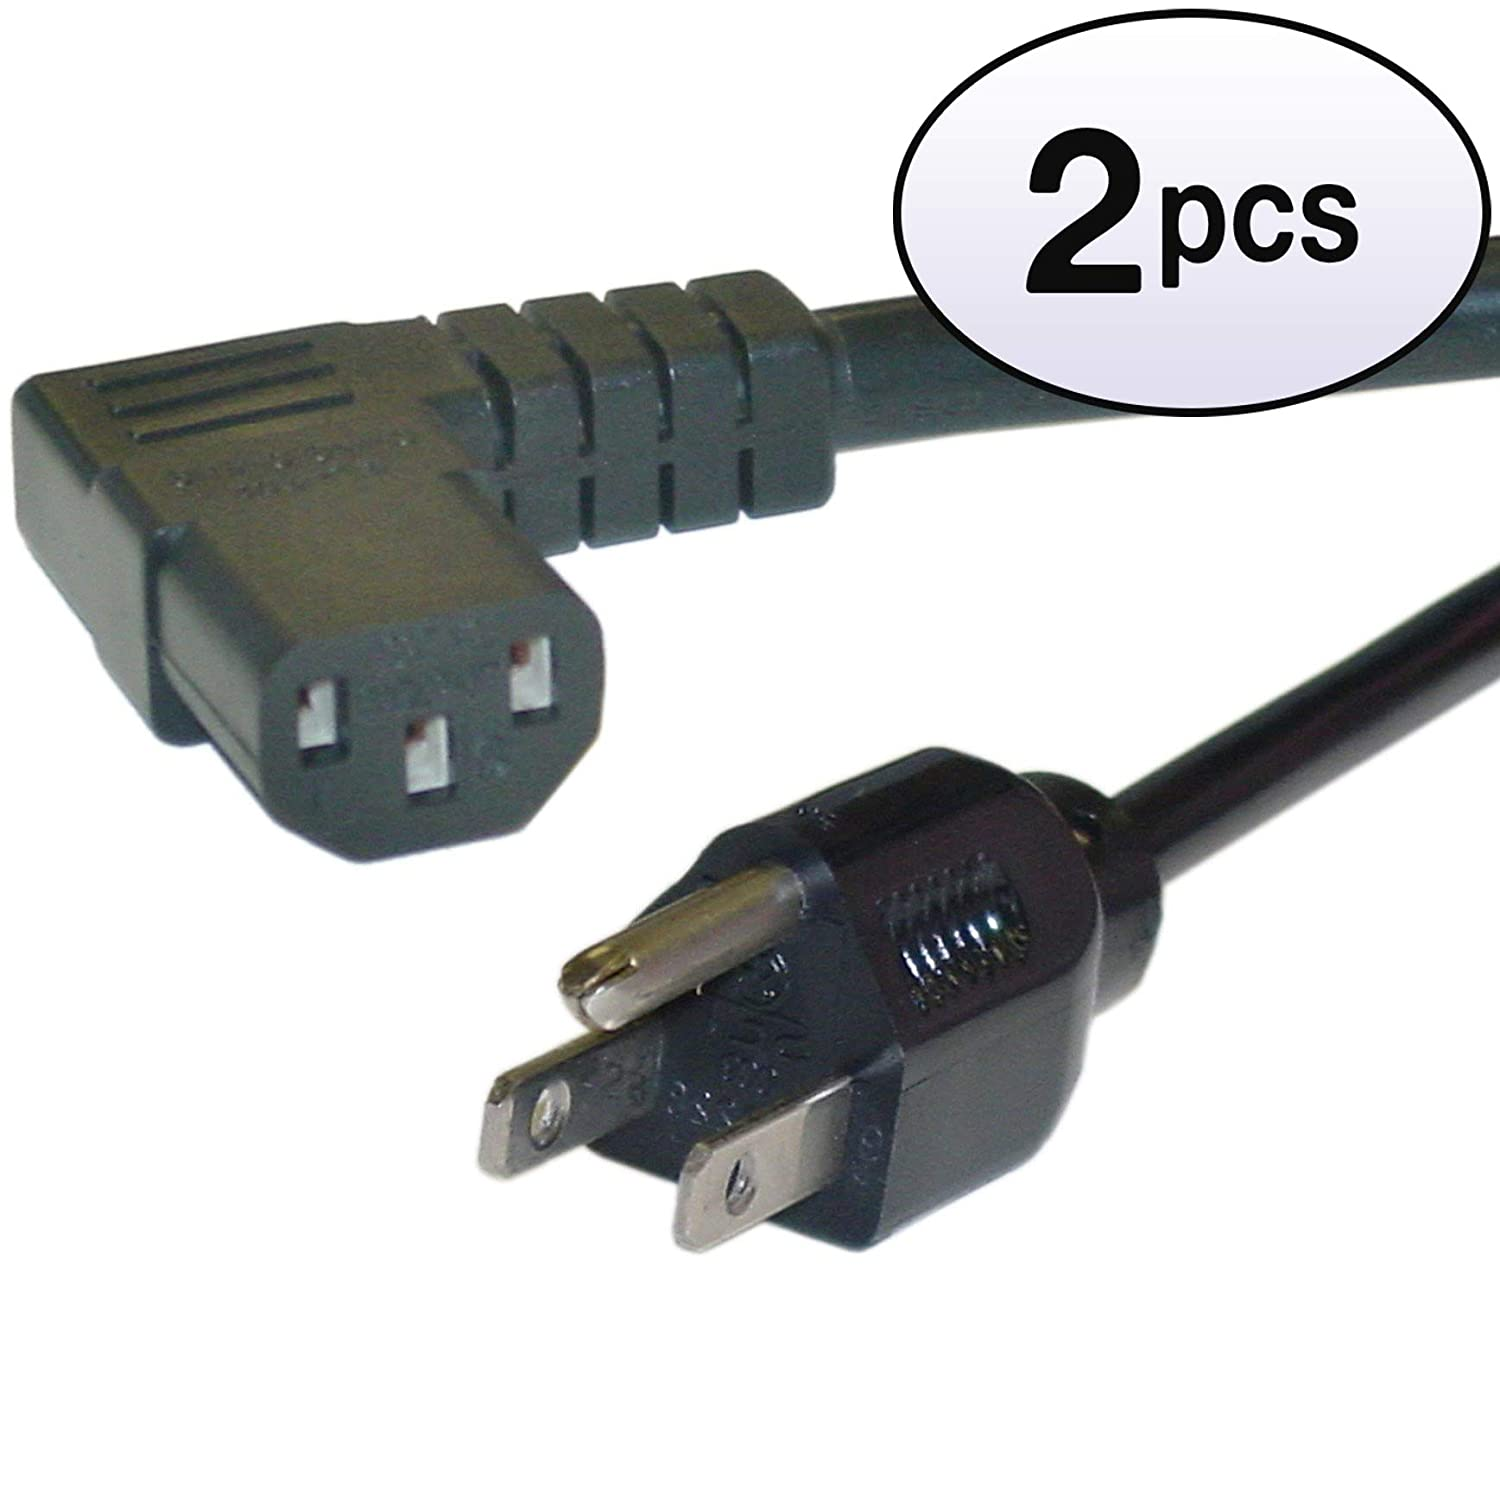 15 Amp Right Angle Computer//Monitor Power Cord GOWOS 14 AWG 3 Pack 25 Feet Black